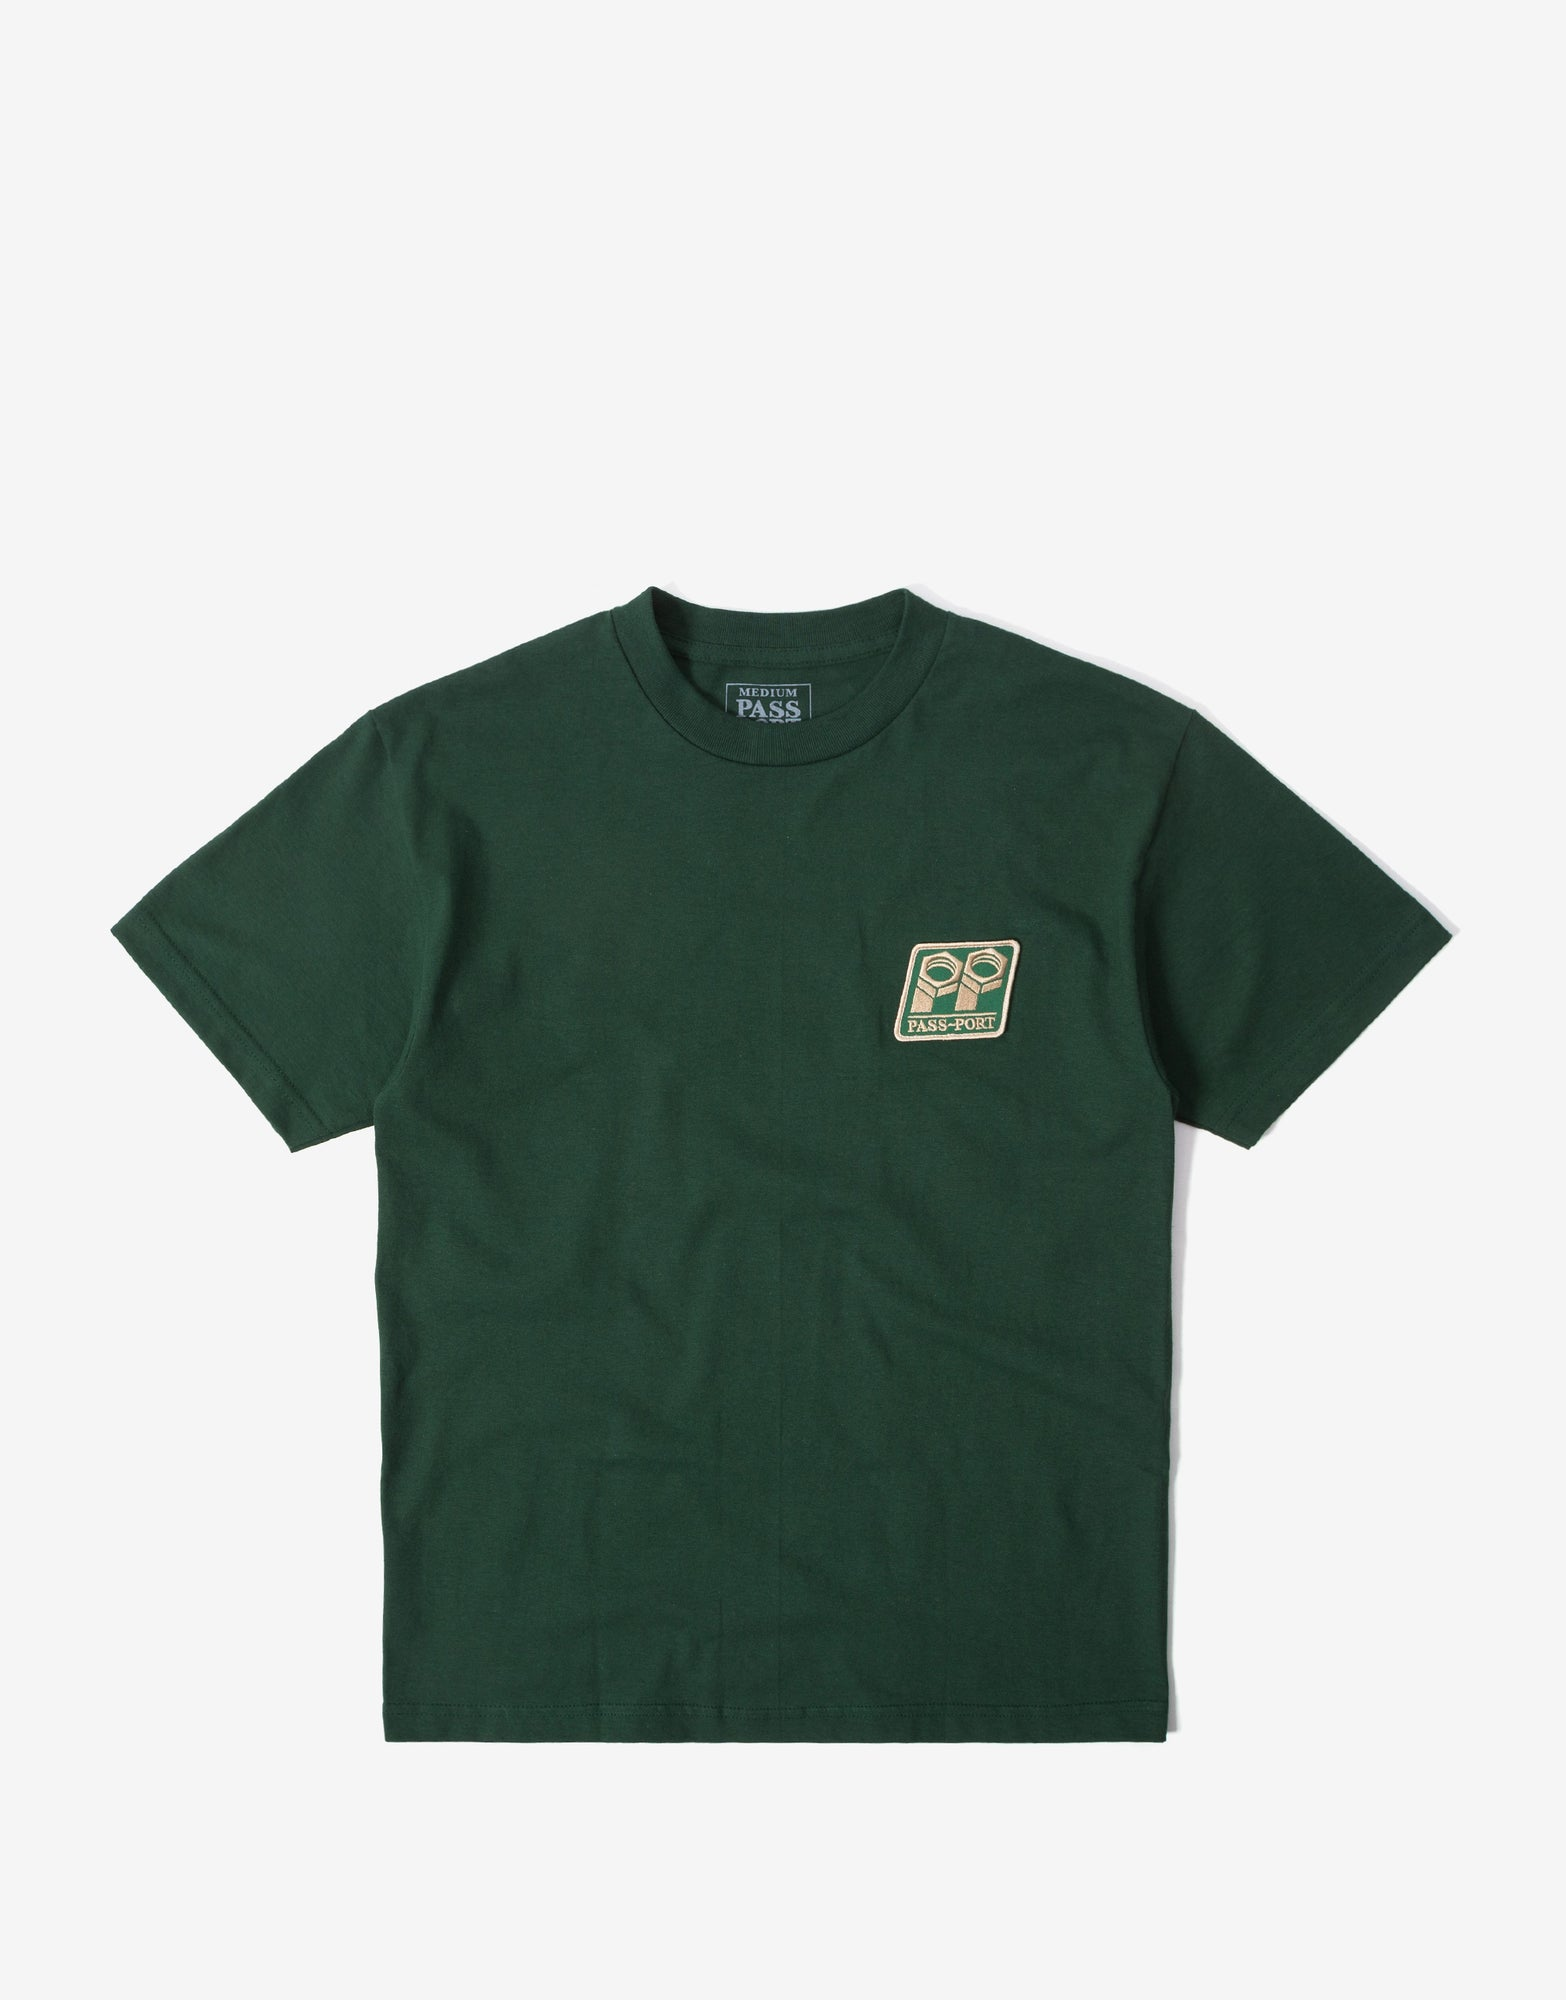 Pass Port Bolt Patch T Shirt - Forest Green